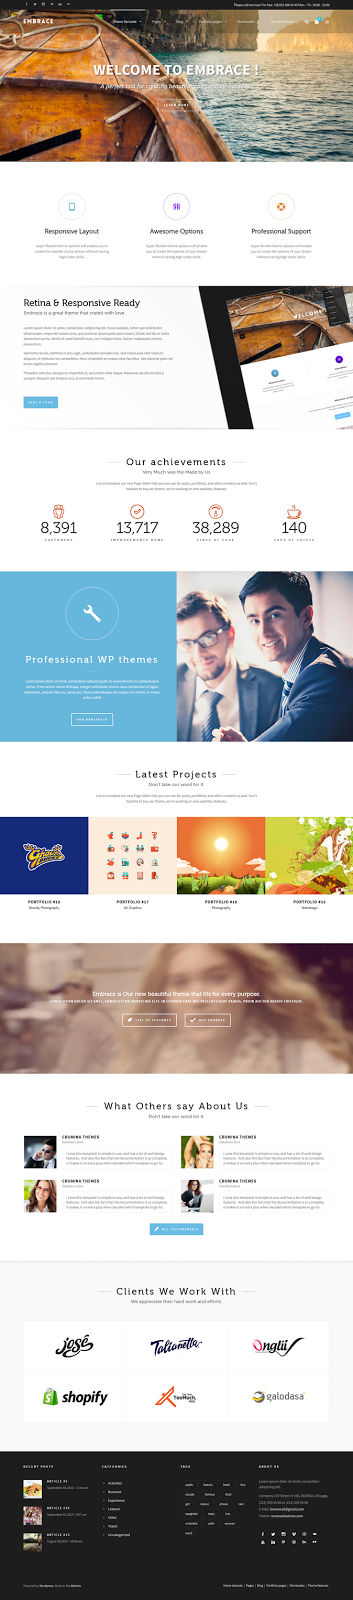 Best Corporate WordPress Theme